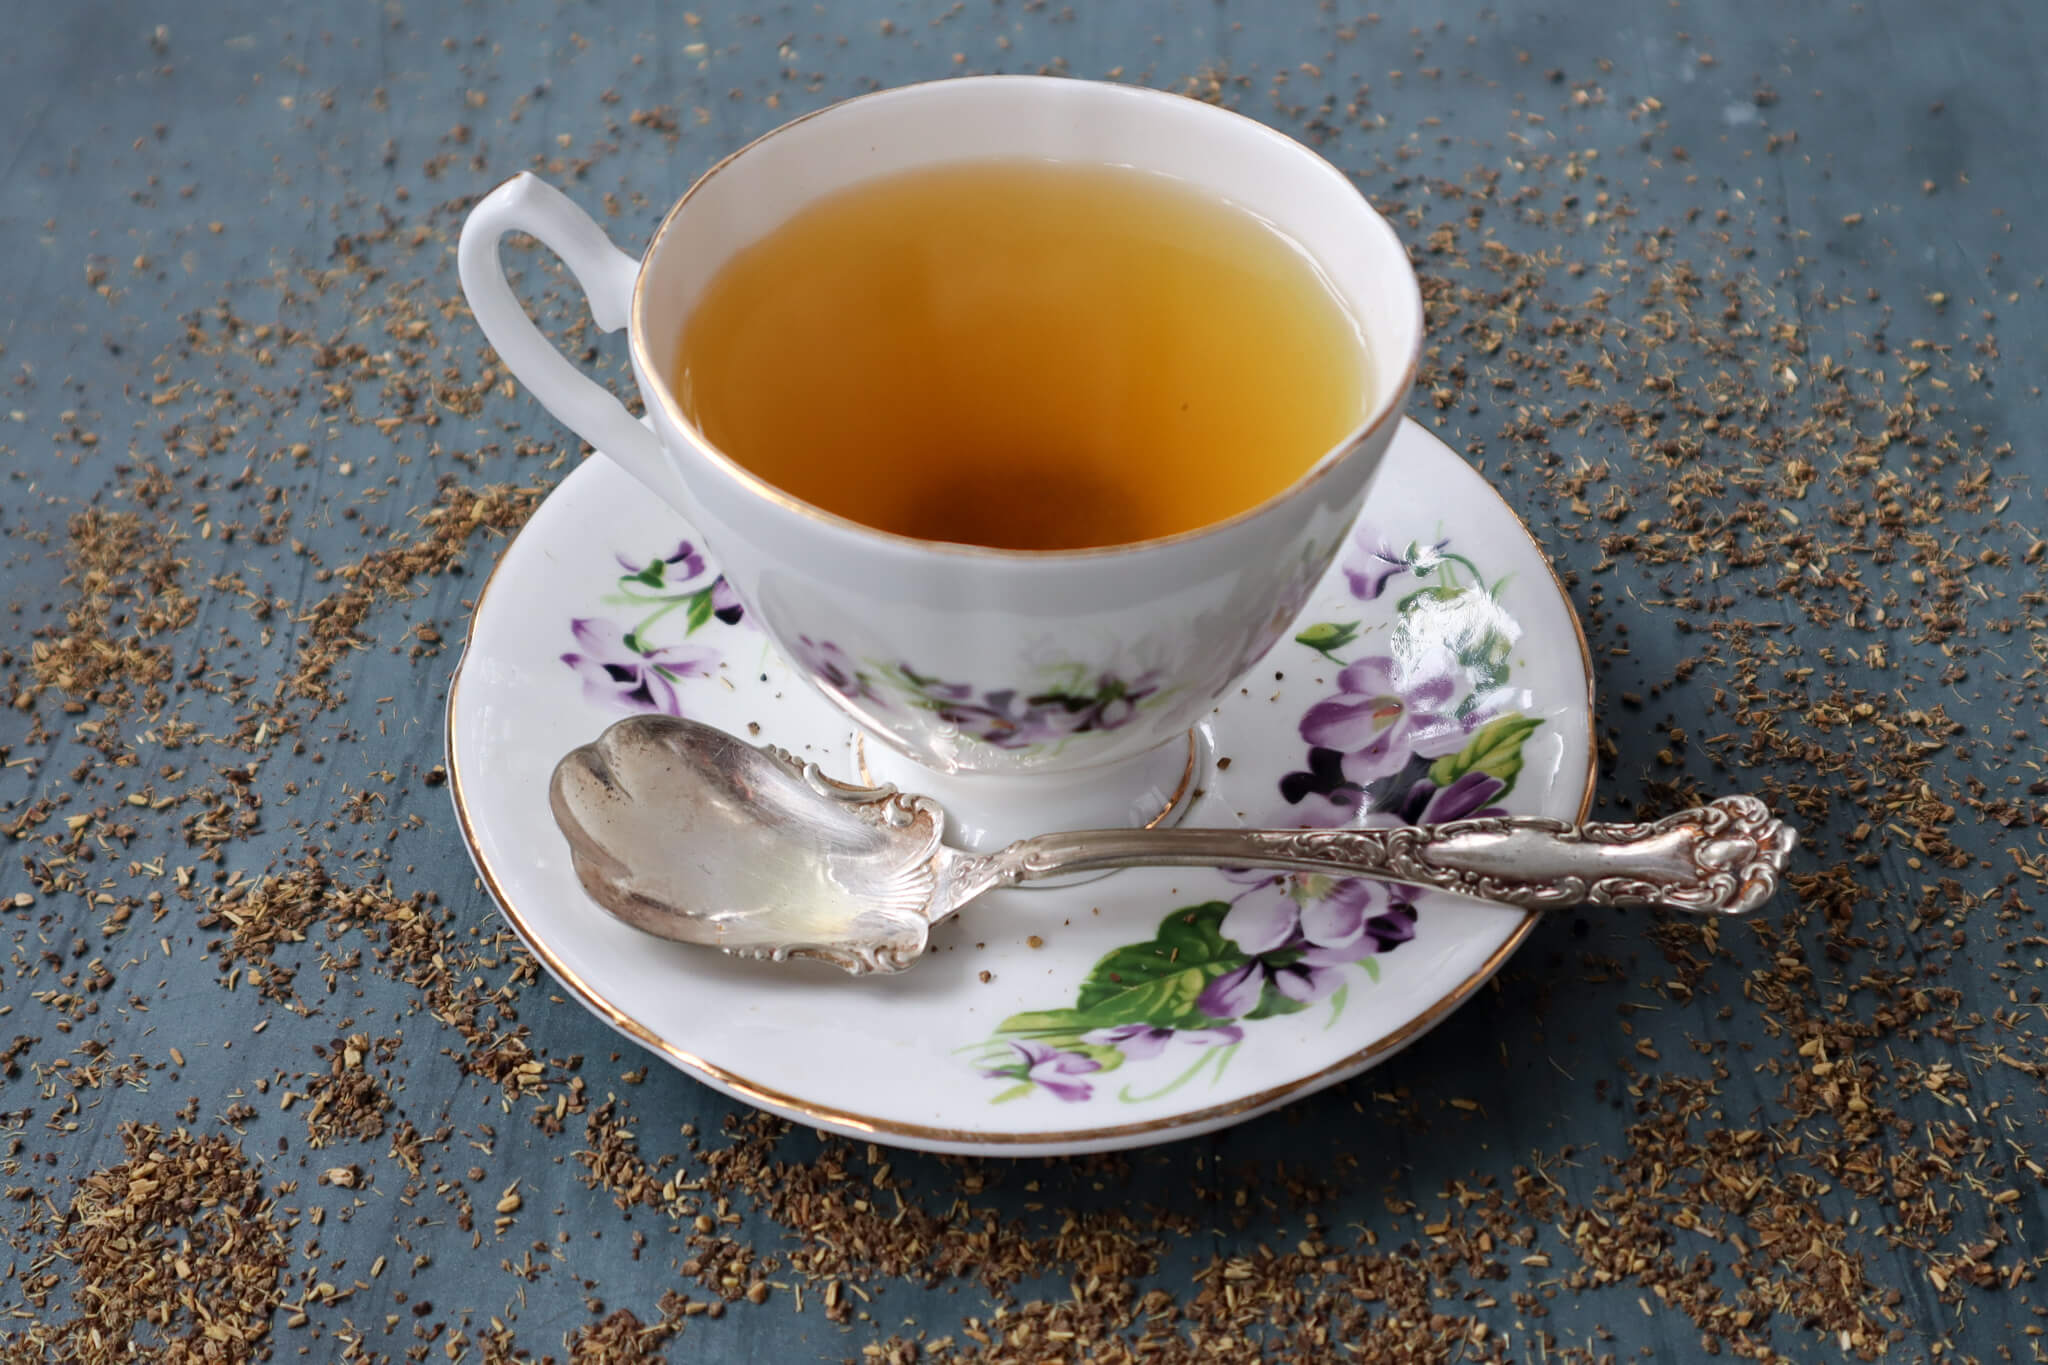 A cup of licorice tea.